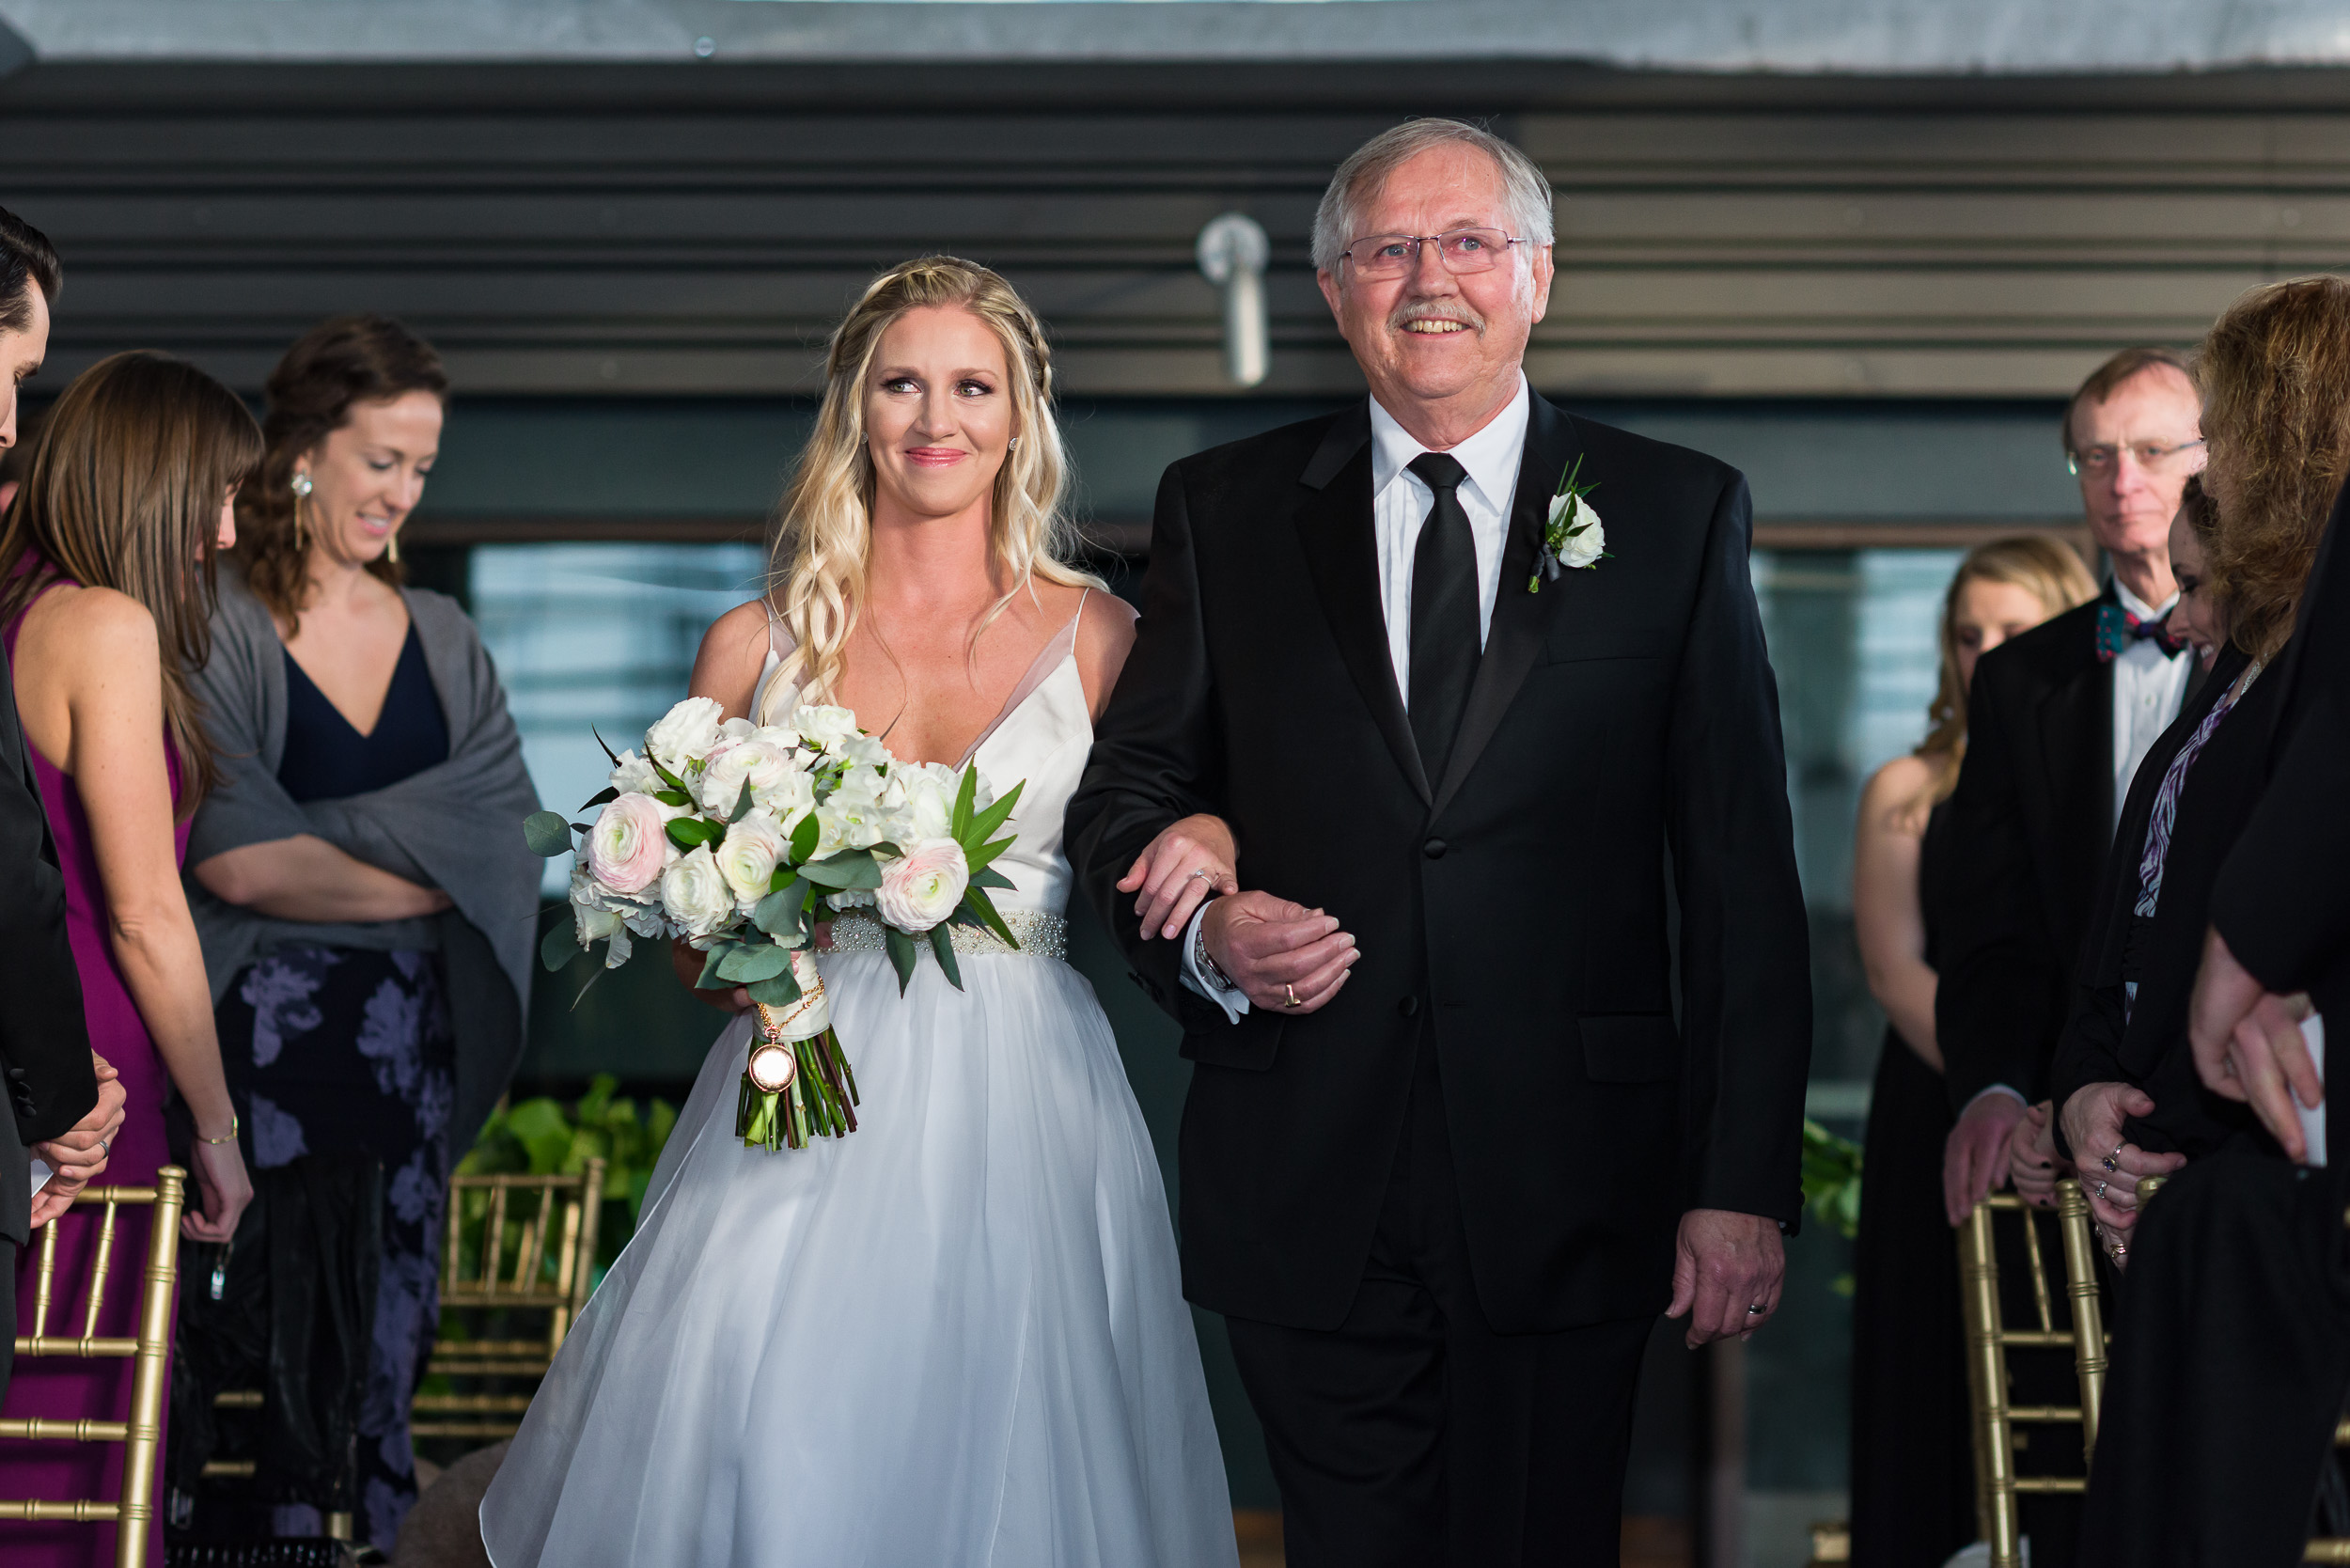 Austin-wedding-photographers-brazos-hall-downtown-bride-tears-father-aisle